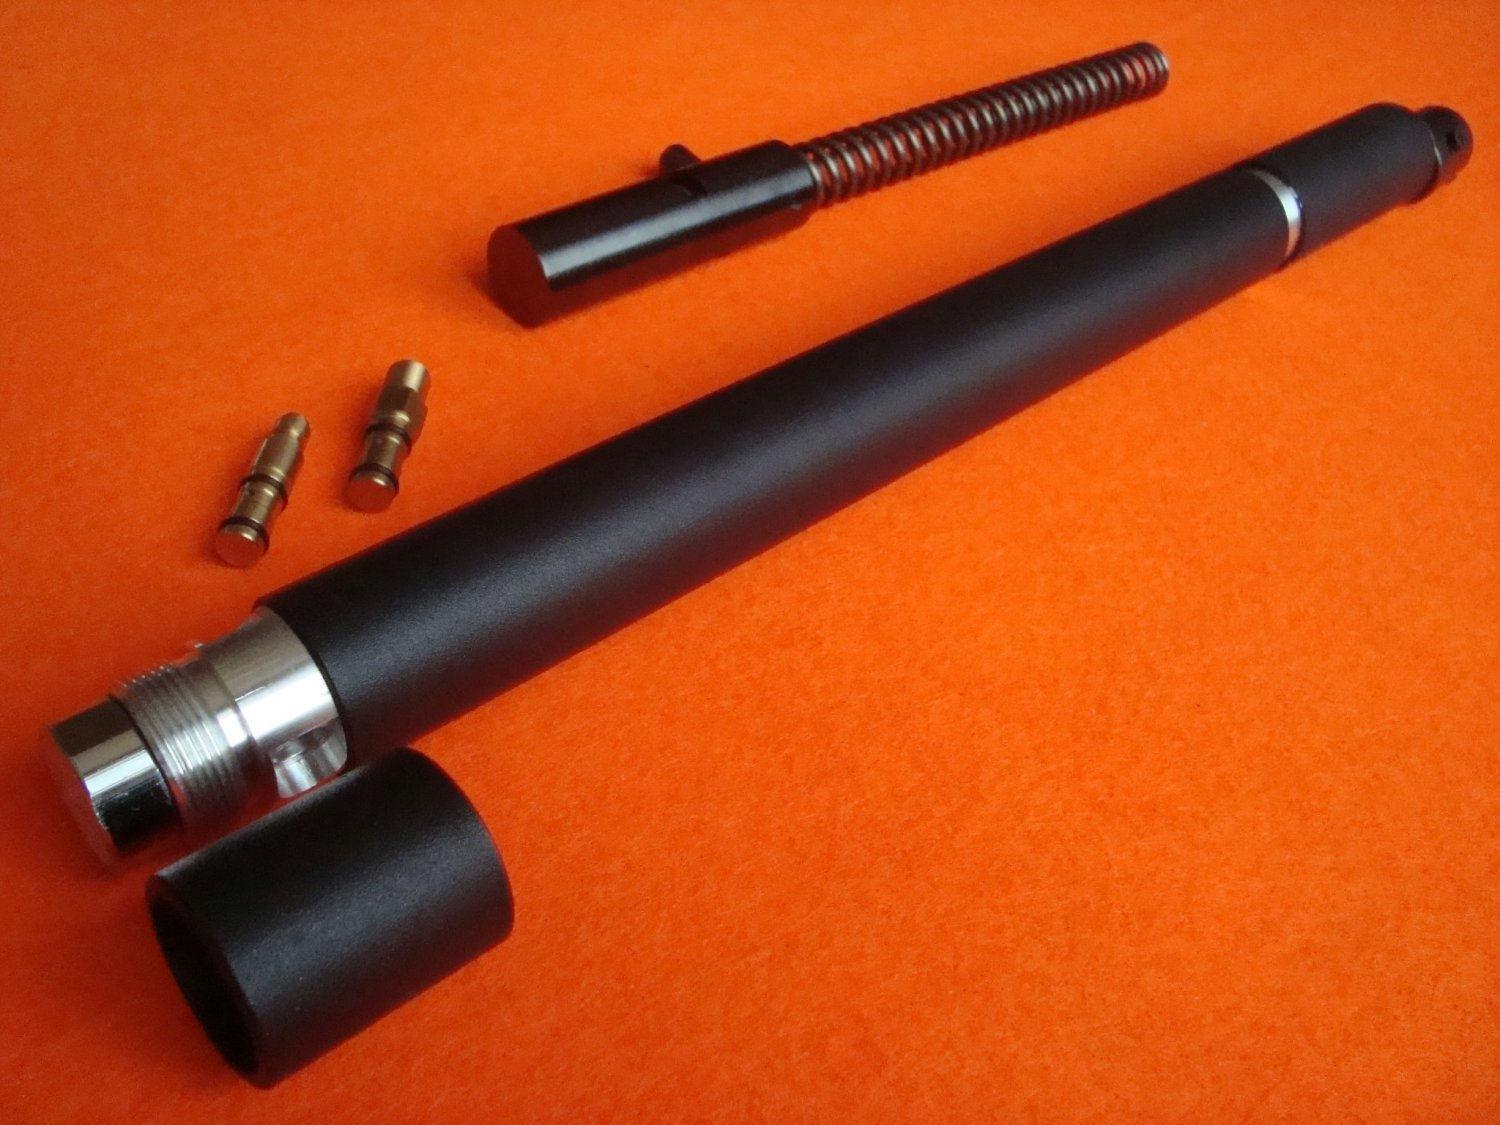 PCP conversion izh-60, mp-60 kit for modernization, tuning part with reducer feed, set made to order